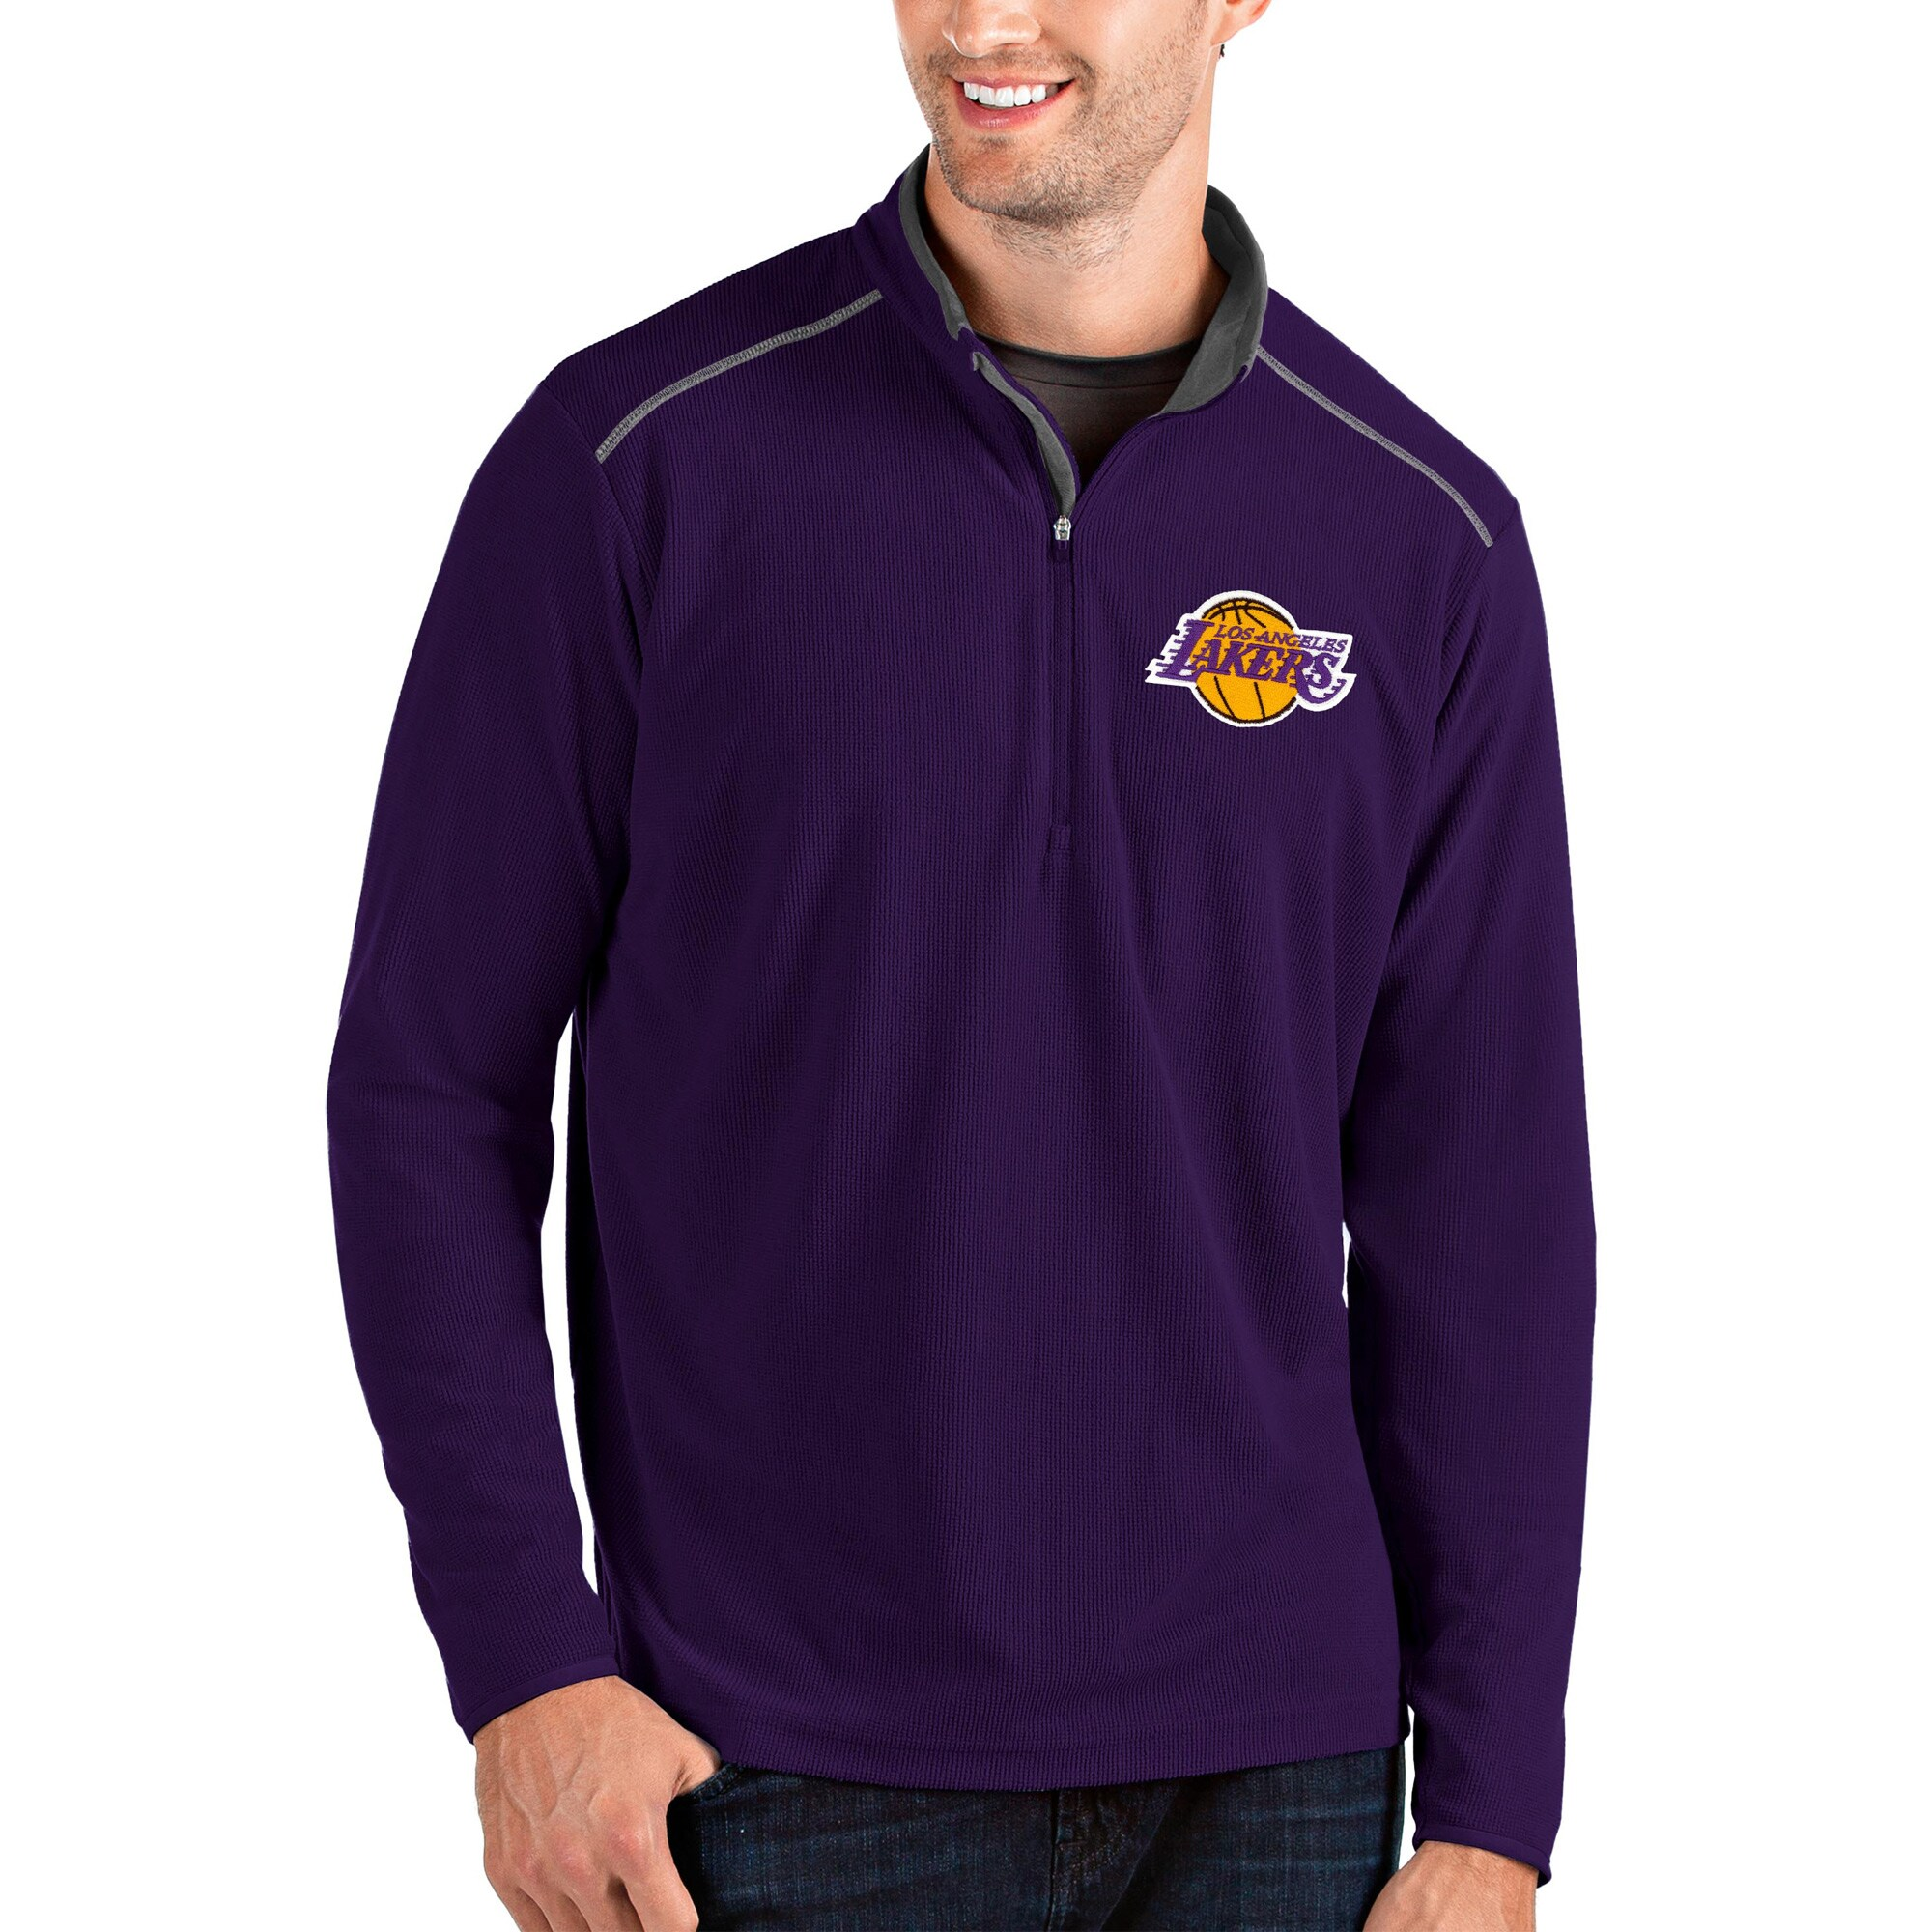 Los Angeles Lakers Antigua Glacier Quarter-Zip Pullover Jacket - Purple/Gray